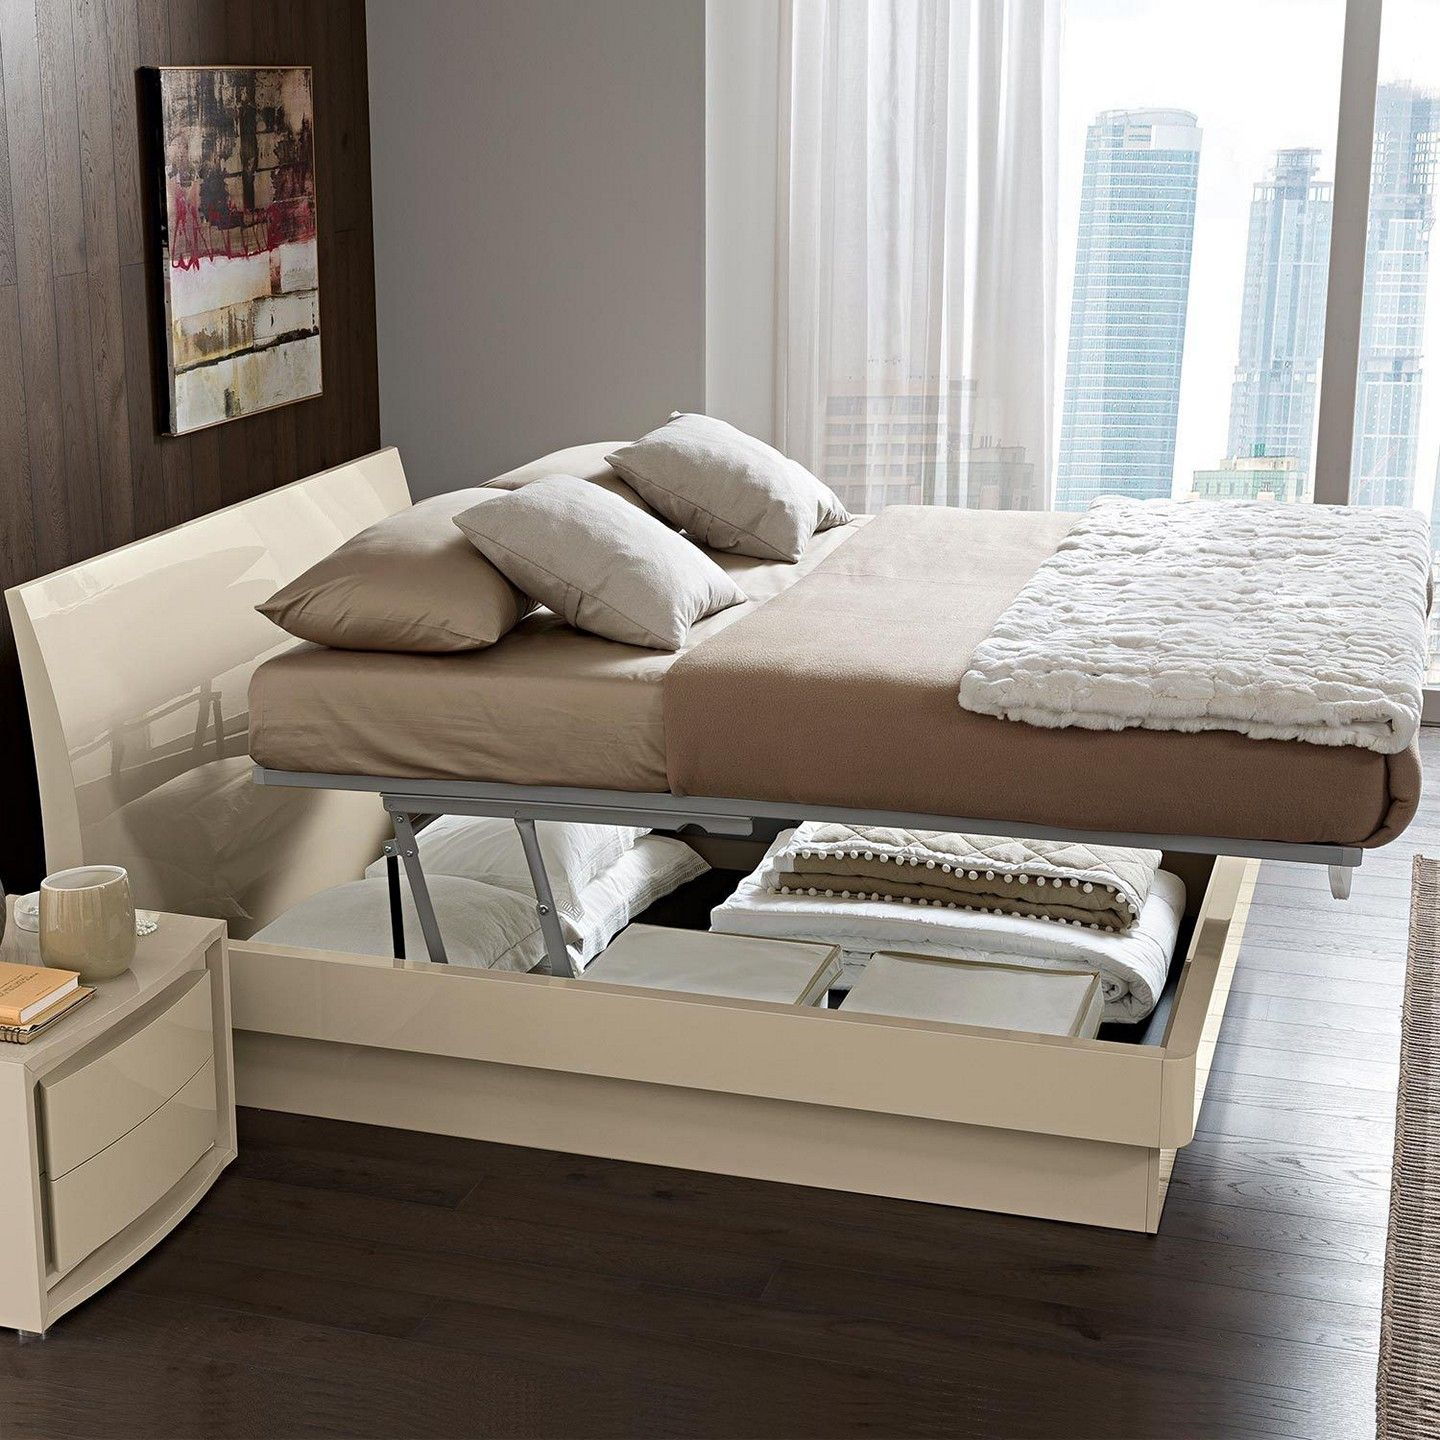 Small Bedroom Storage Ideas for couples | Small bedroom ...